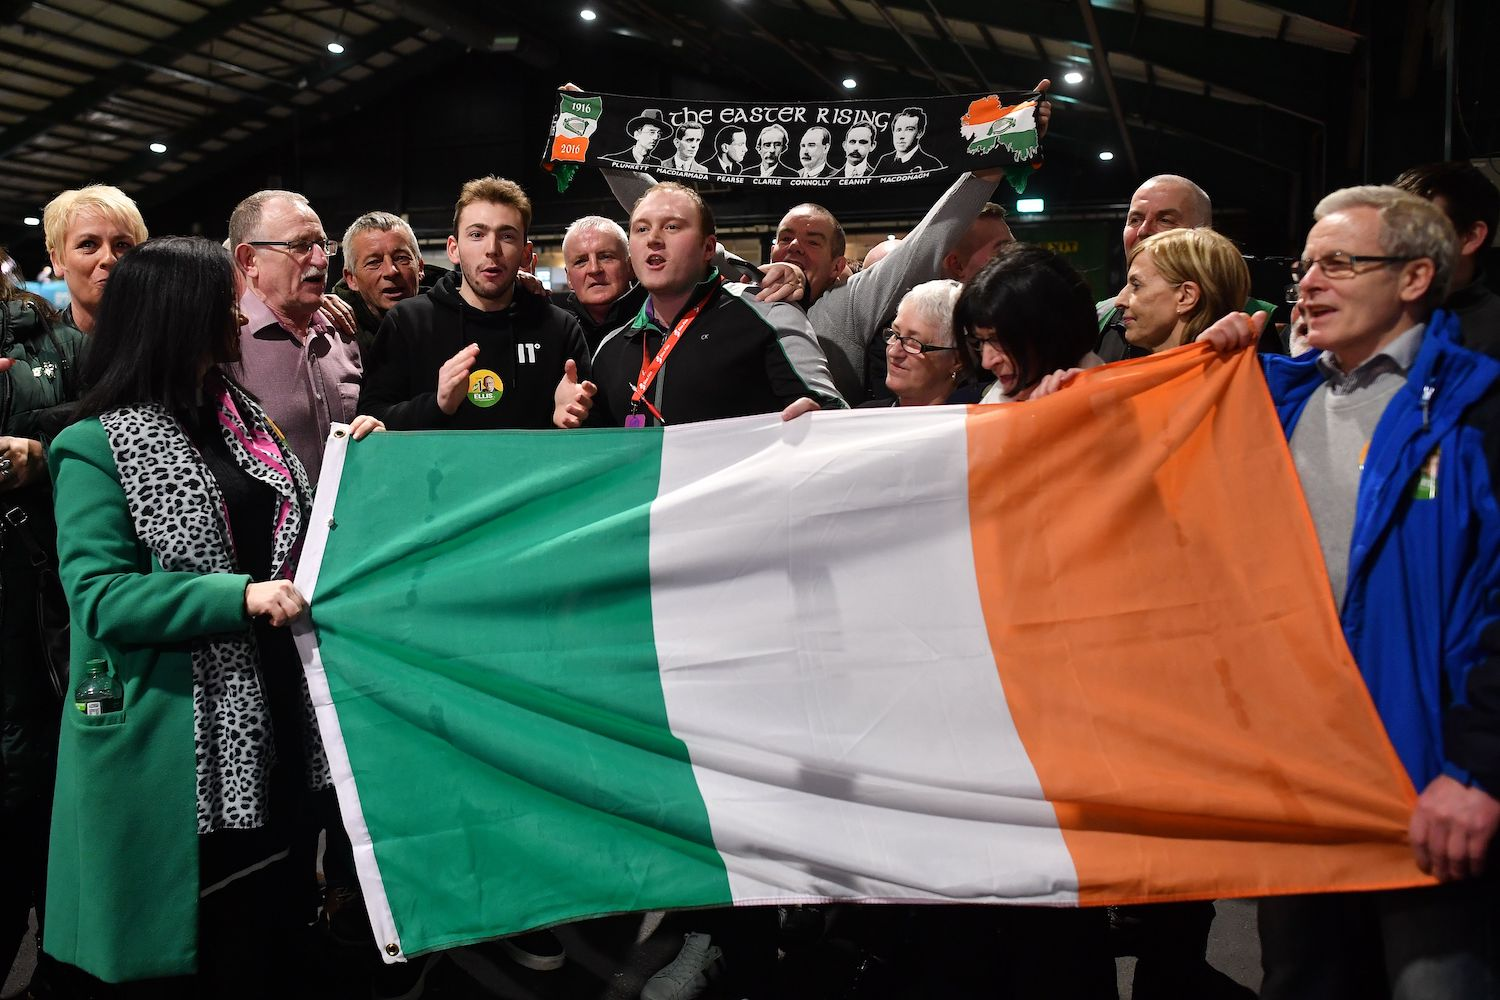 Sinn Fein Just Upended Ireland's Status Quo. What Comes Next?